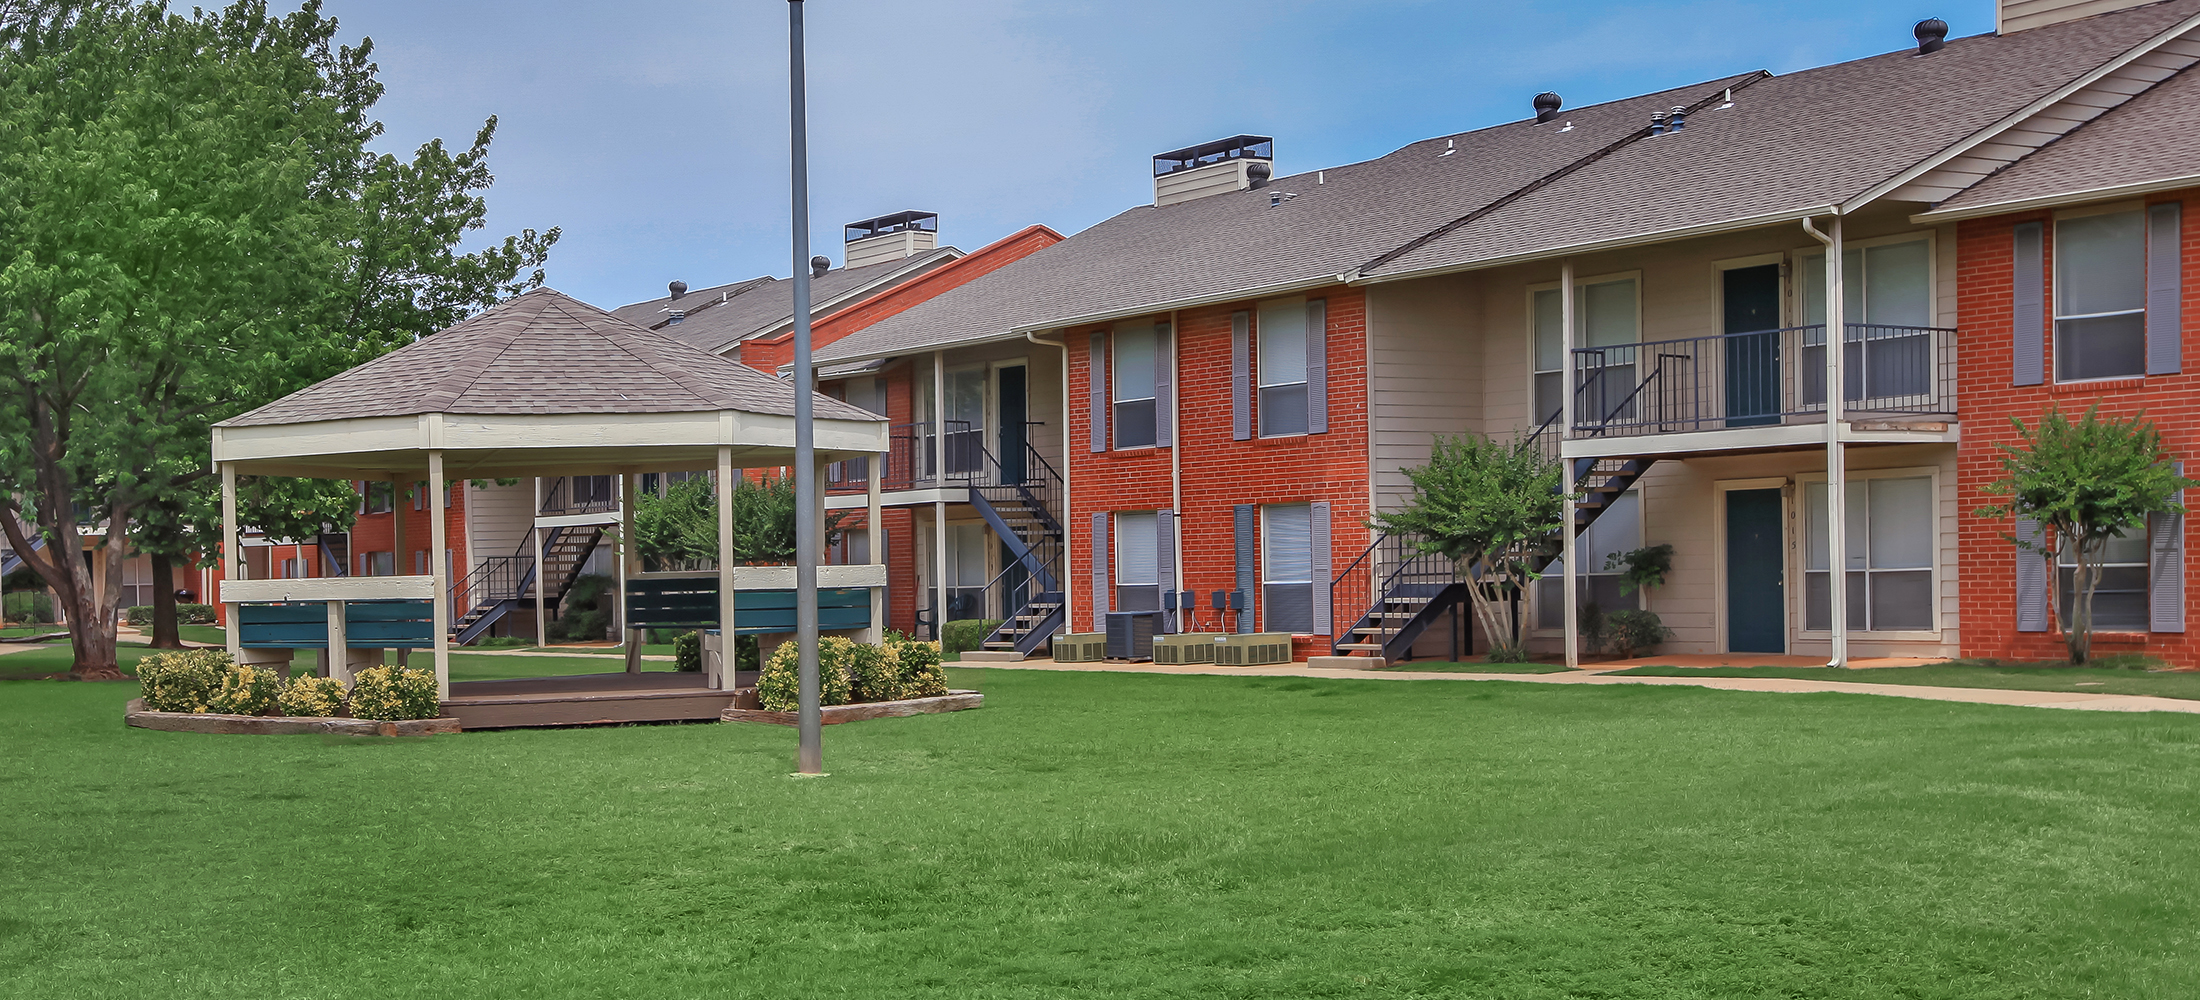 Willow Creek - Apartments in Midwest City, OK